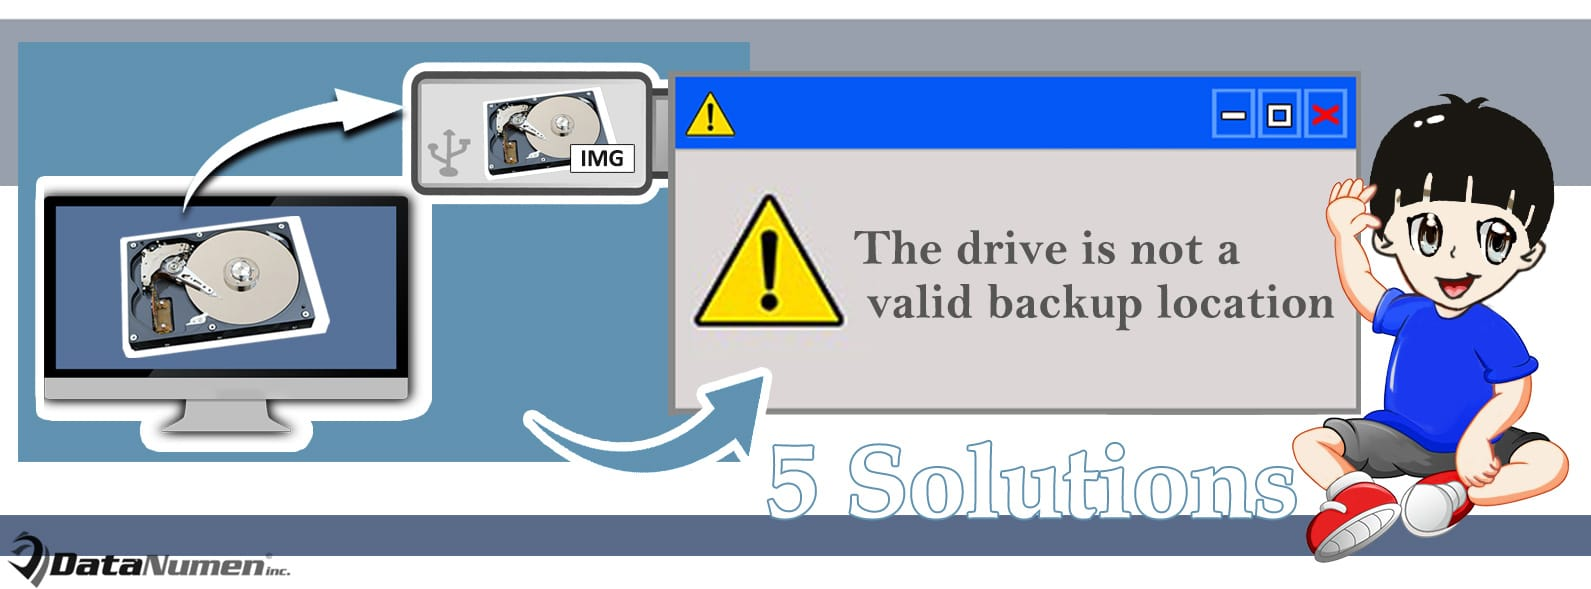 "5 Solutions to ""The drive is not a valid backup location"" Error in Windows"